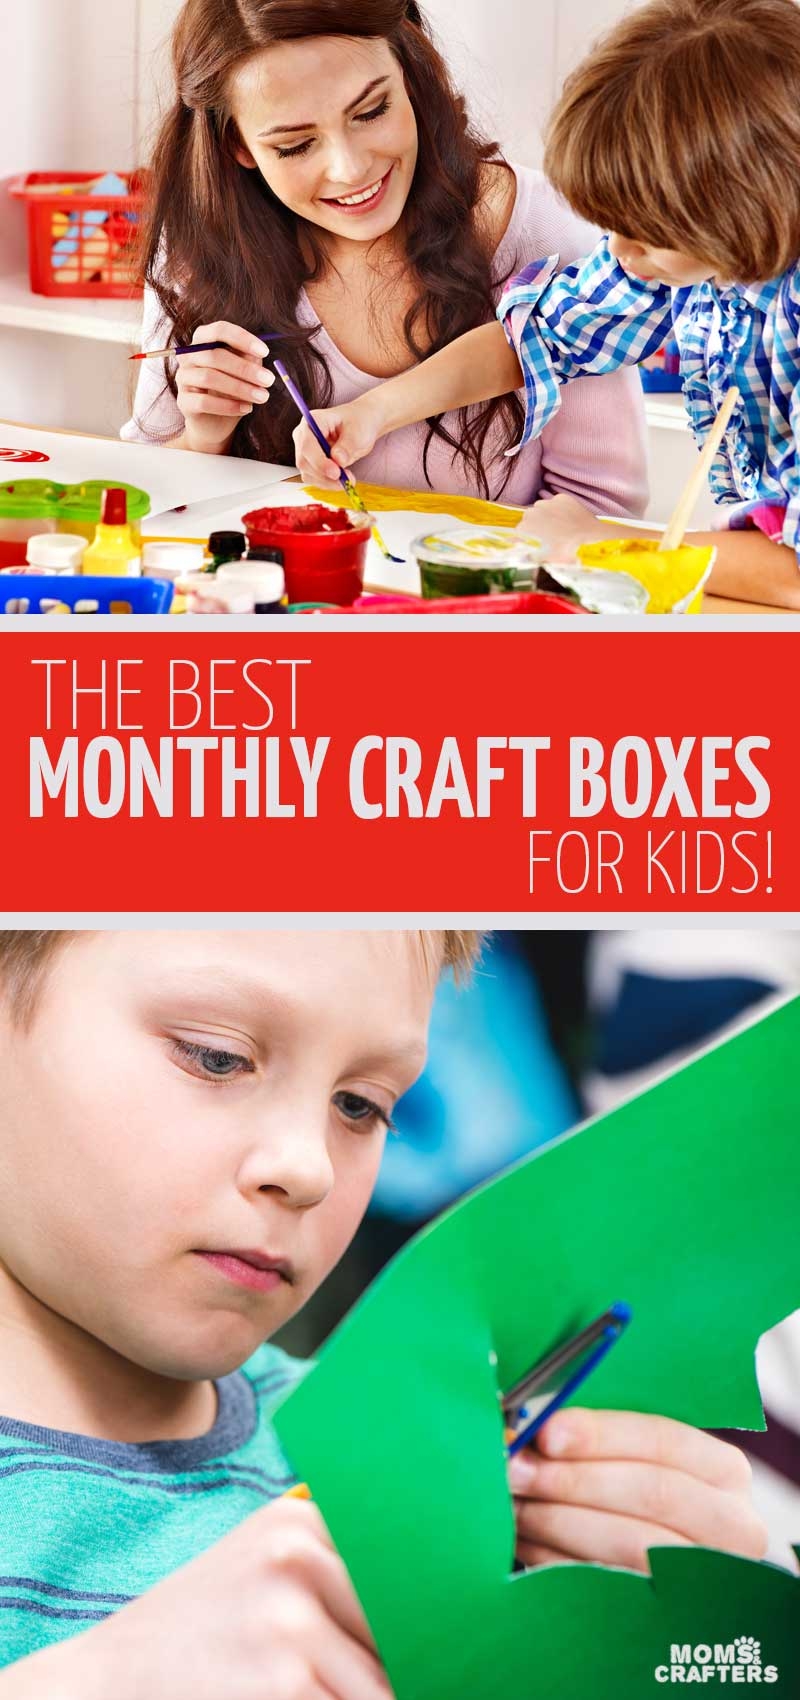 Click for the ultimate list of the best craft subscription boxes for kids and teens as written up by a professional crafter! These are great gifts for crafty kids who love to be creative, adn a great way to do weekend crafting activities as a family.